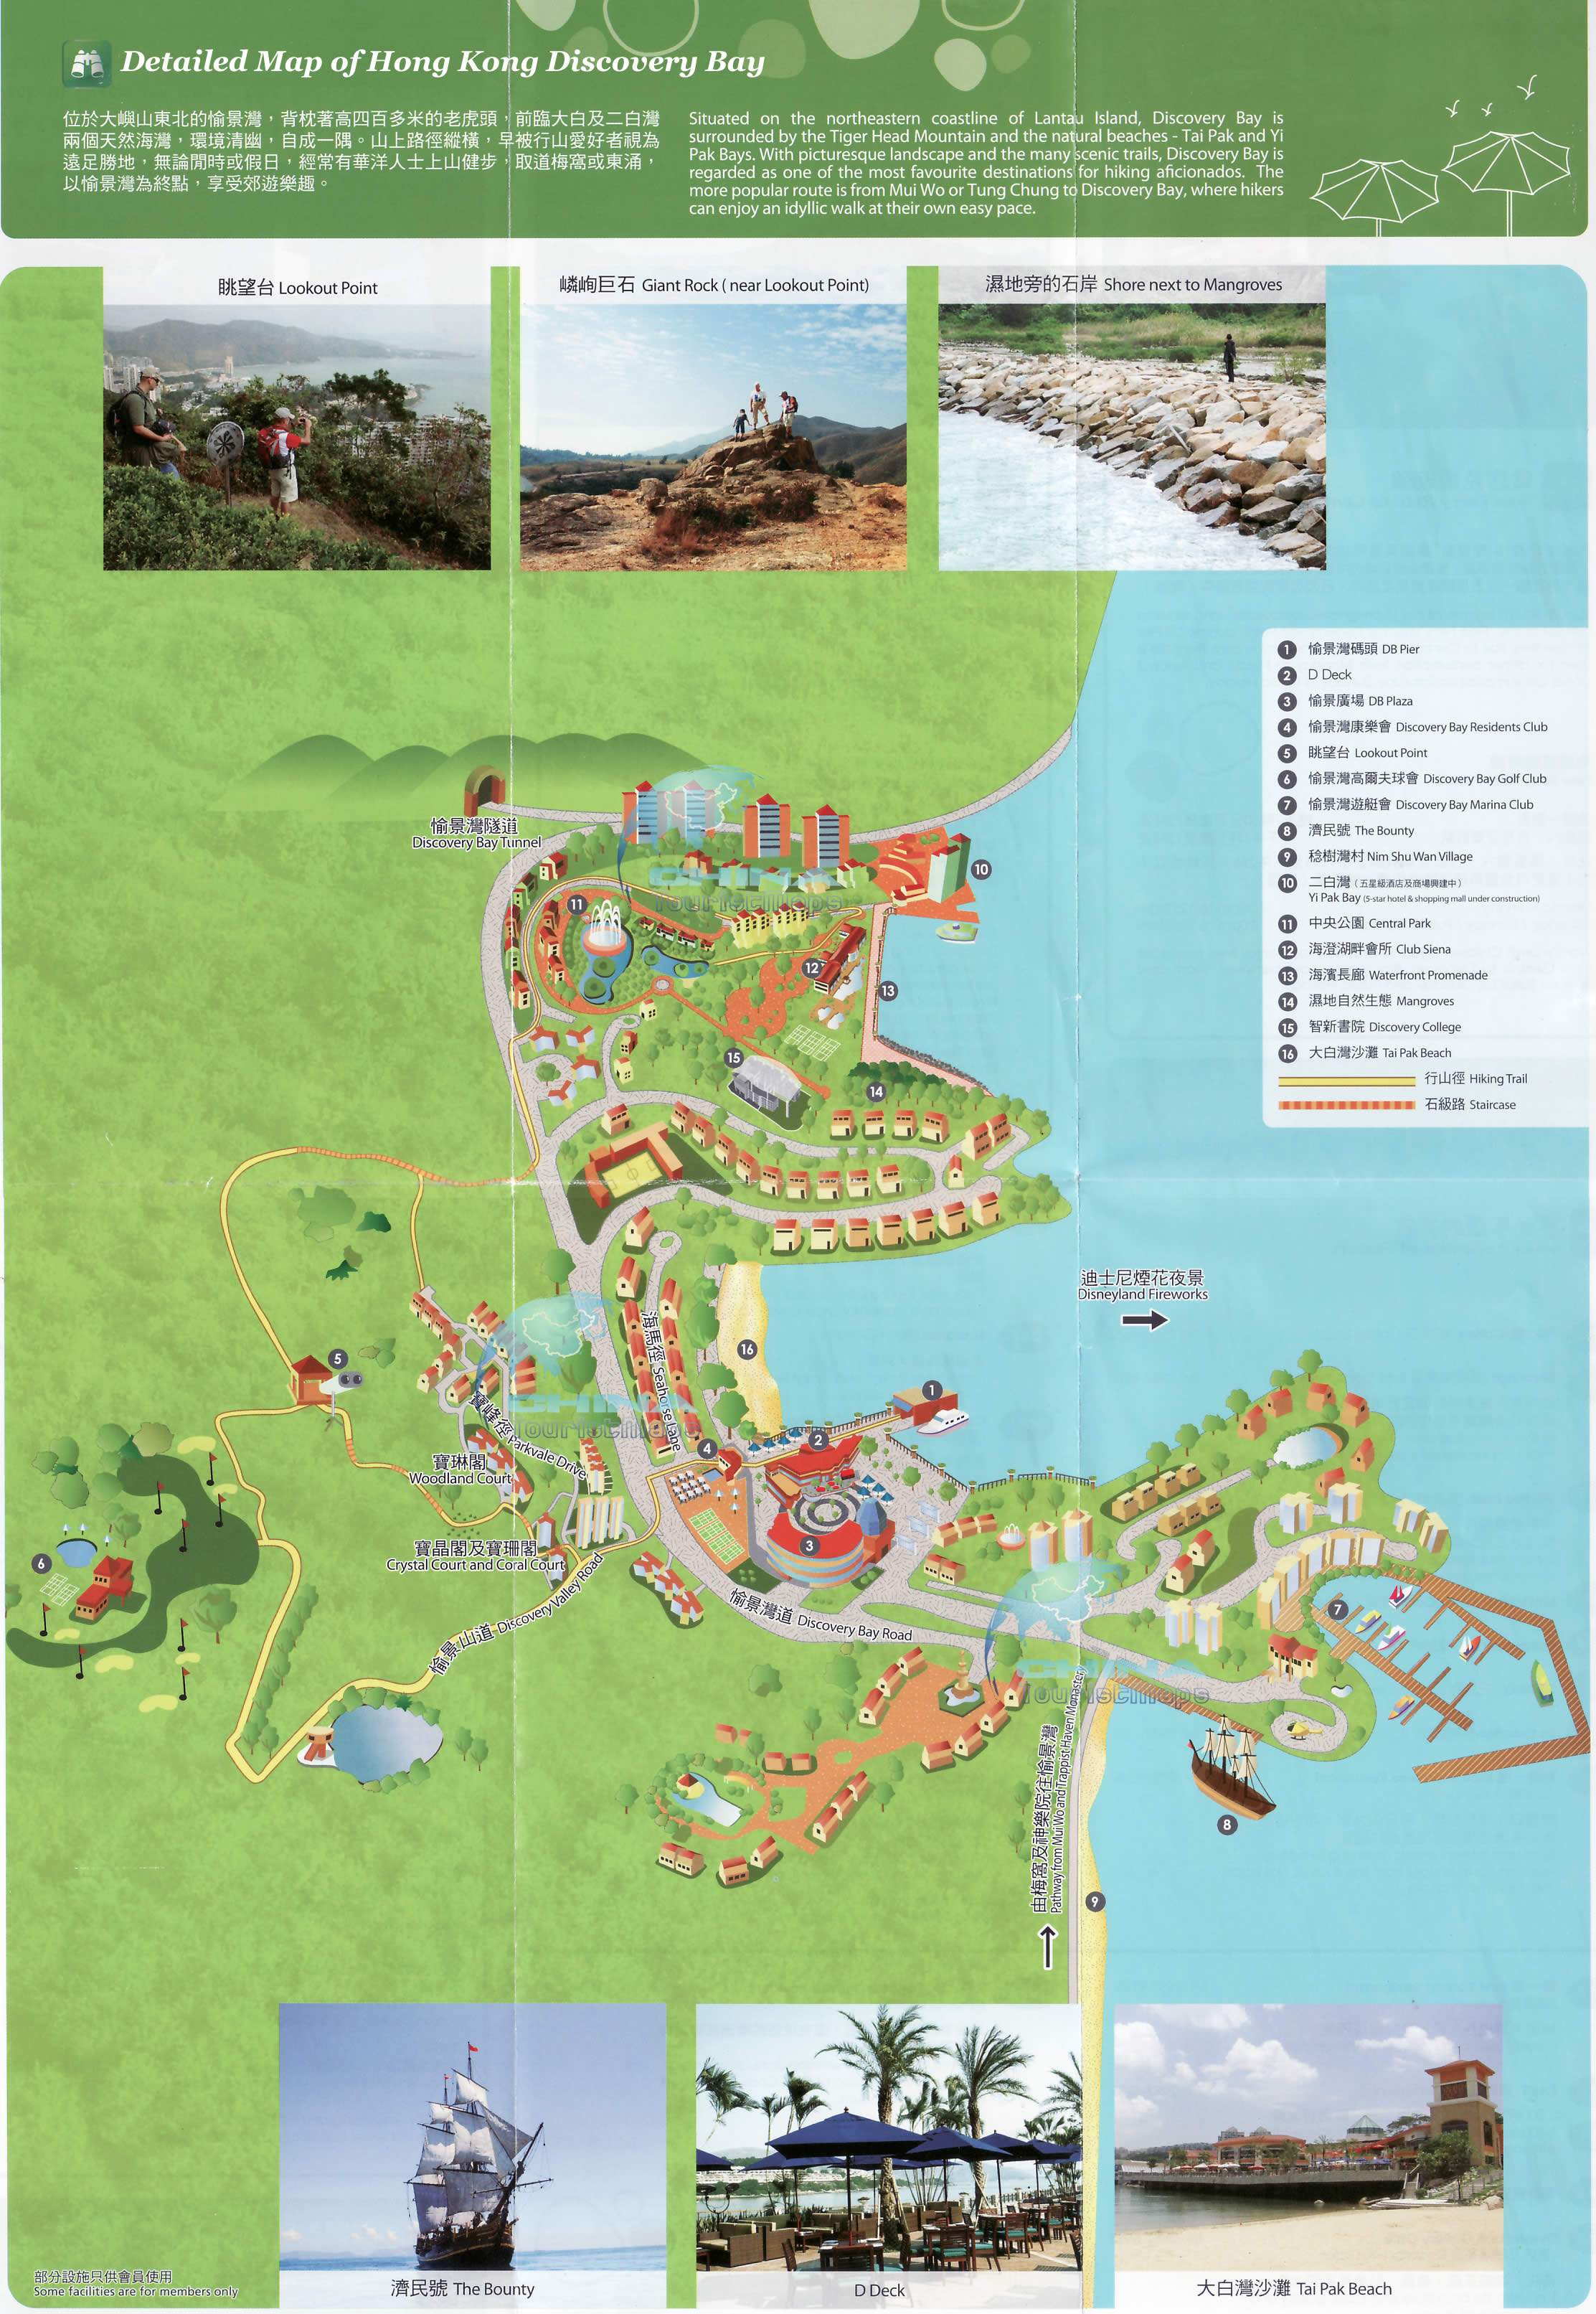 Detailed Map of Hong Kong Discovery Bay DB Travel Guide